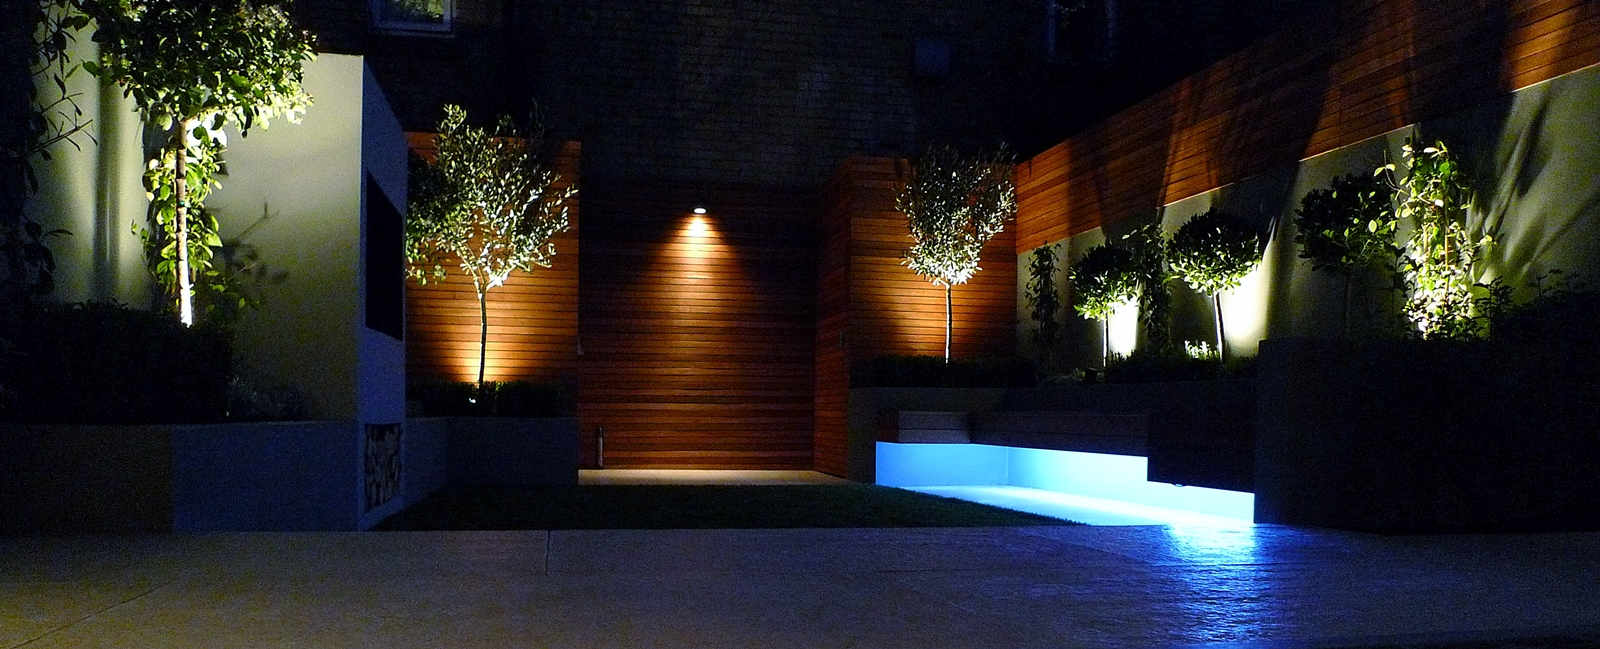 night lighting in modern garden clapham balham battersea london